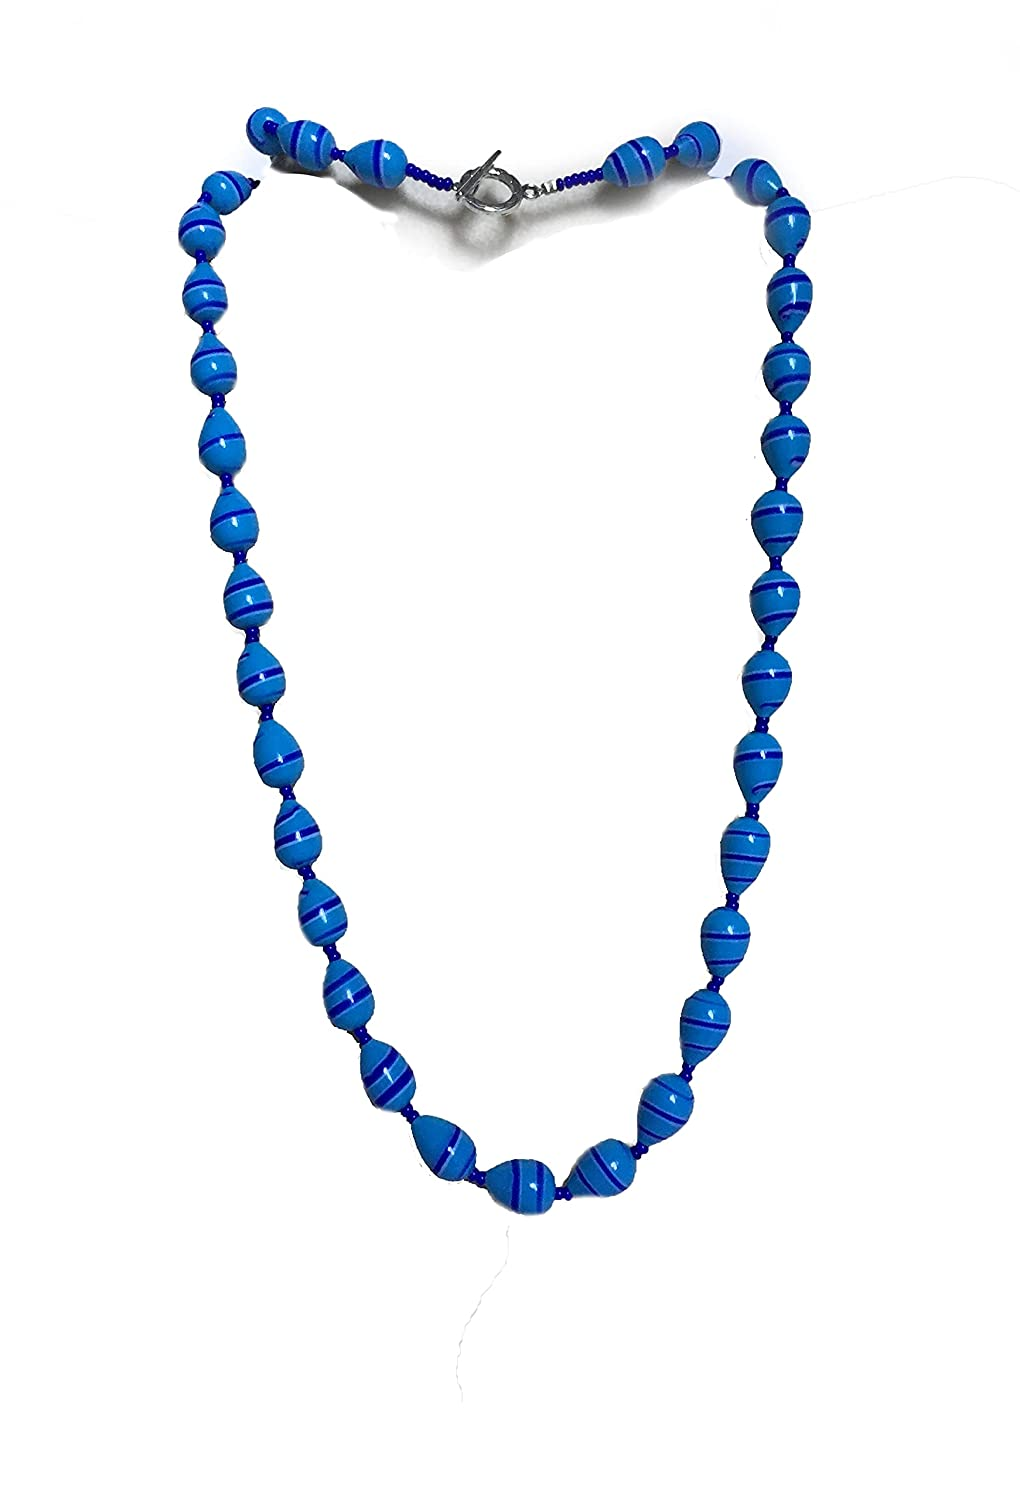 New life Blue Royal Long Max 79% OFF Handmade vintage Necklace. One-of-a-Kind